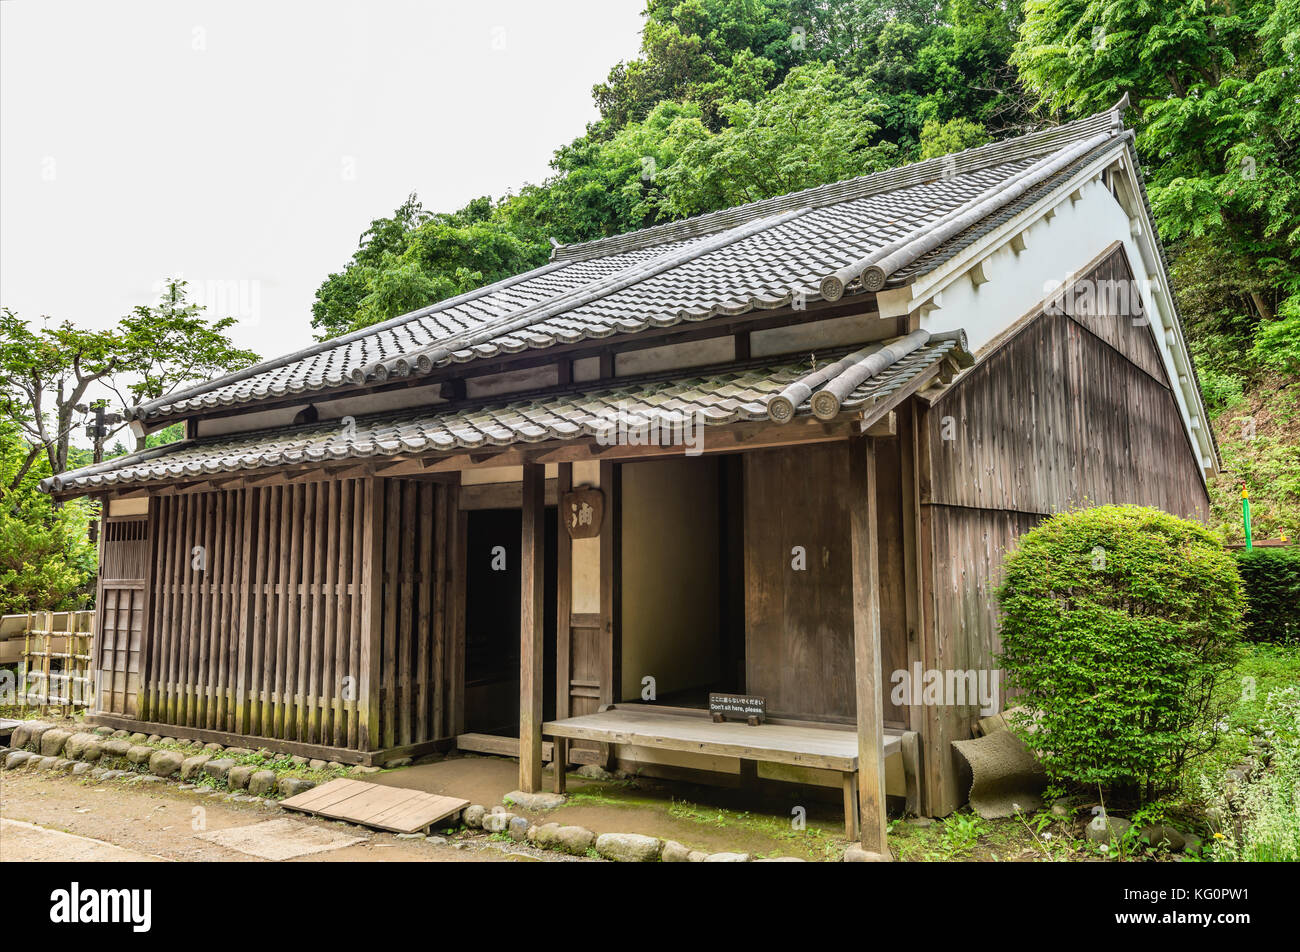 Ioka House at Nihon Minkaen Folk House Museum, Kawasaki City, Kanagawa, Japan - Stock Image